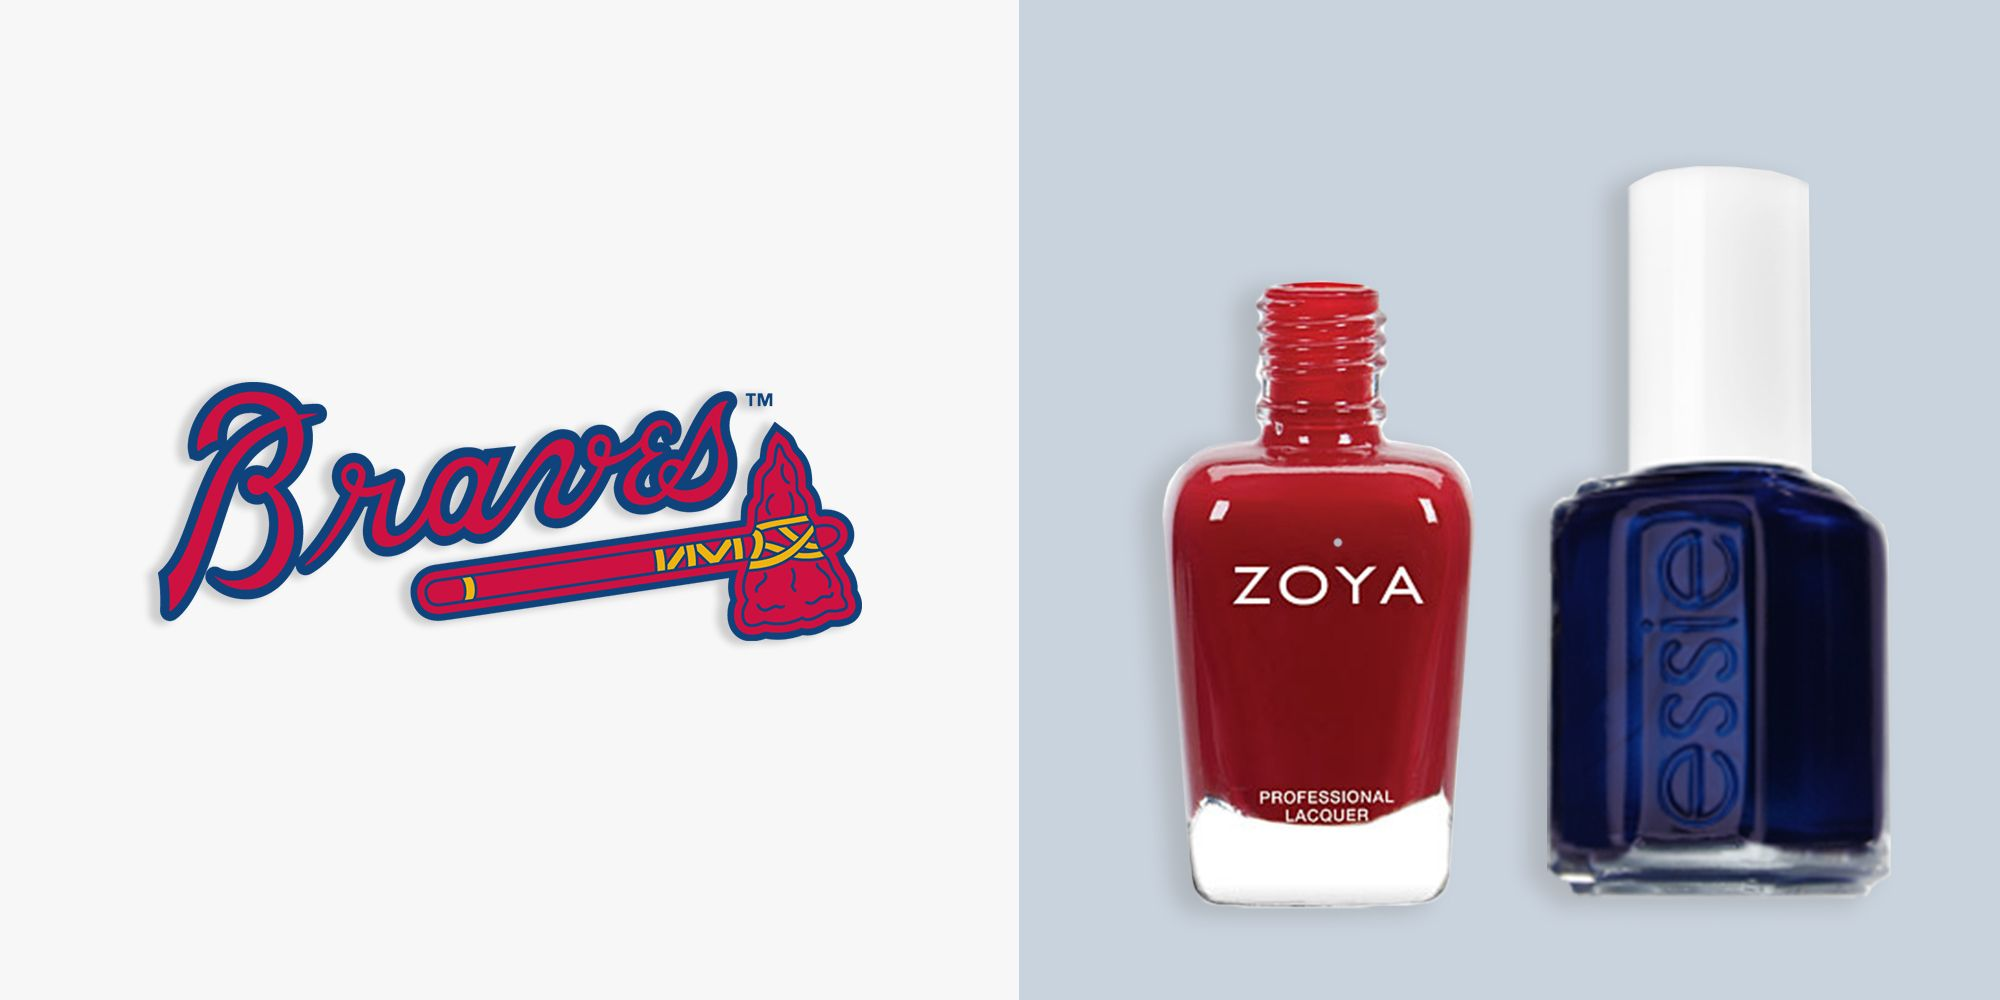 """<p><em><strong>ZOYA Nail Polish in Janel, $10, </strong></em><em><strong><a href=""""http://www.zoya.com/content/item/Zoya/Zoya-Nail-Polish-in-Janel.html """" target=""""_blank"""">zoya.com</a>&#x3B; <em><strong>Essie Nail Polish in Midnight Cami, $9, <a href=""""http://www.essie.com/Colors/blues/midnight-cami.aspx"""" target=""""_blank"""">essie.com</a></strong></em></strong></em><a href=""""http://www.zoya.com/content/item/Zoya/Zoya-Nail-Polish-in-Janel.html """" target=""""_blank""""></a></p><p>With two bold shades to play with, there's almost no excuse to come to a Braves game barehanded. Navy and red polka dots would look awesome sprinkled over nude nails, but we're also in favor of block tips over white beds.</p><p><strong>More:</strong> <a href=""""http://www.bestproducts.com/beauty/g431/football-nail-color-pairs/?"""" target=""""_blank"""">The Best NFL-Inspired Looks to Prep for Next Season</a></p>"""